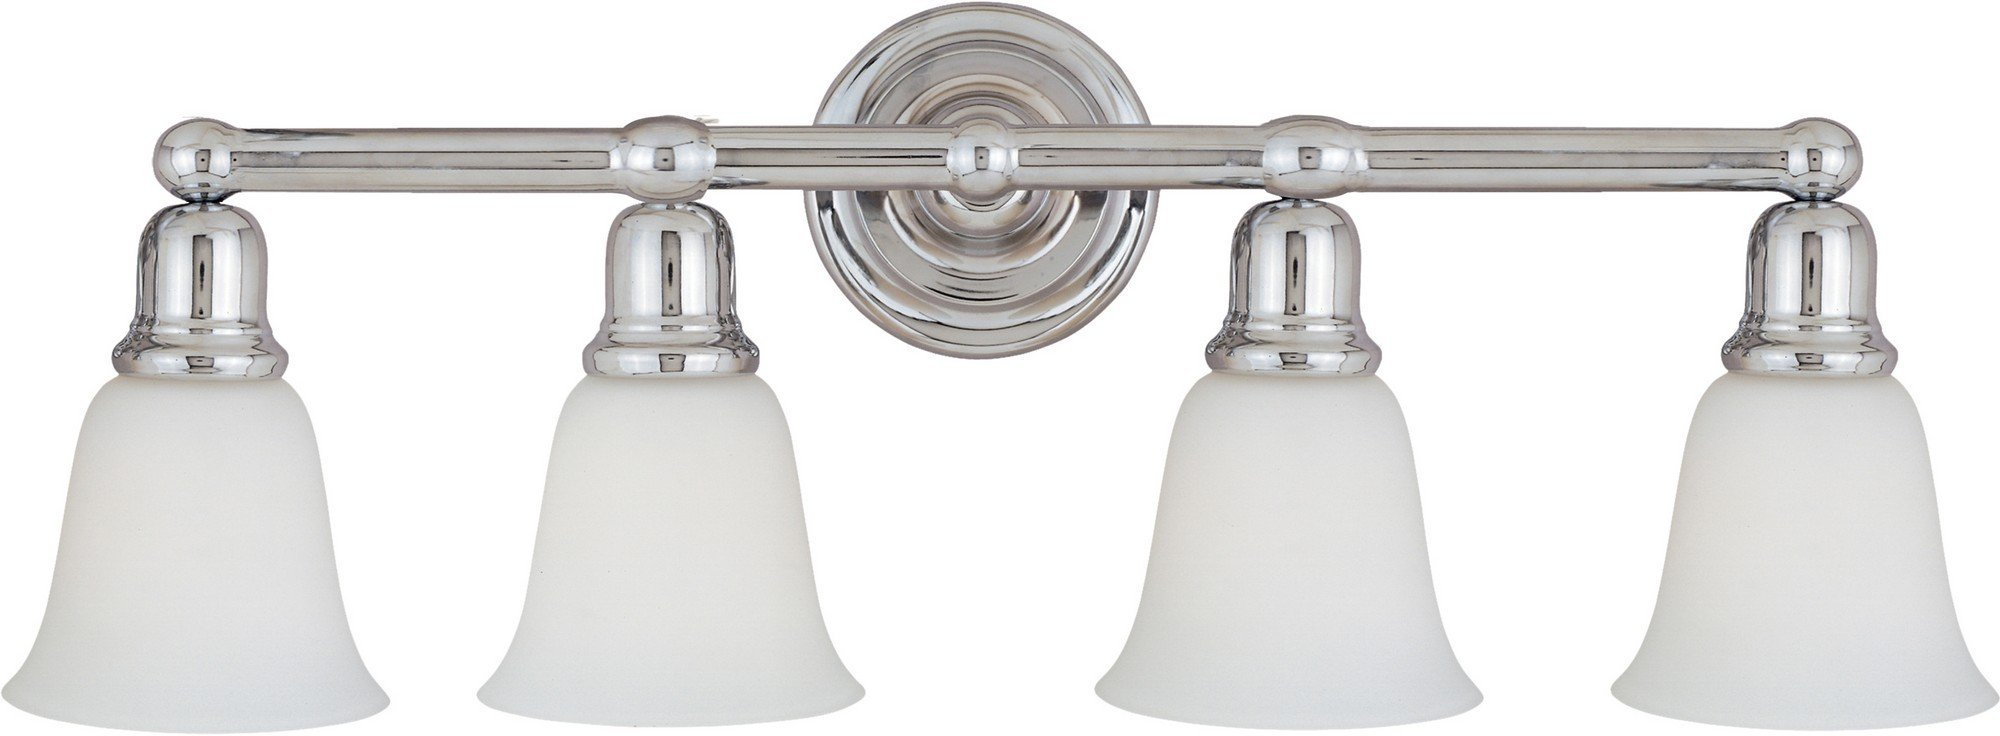 Maxim 11089WTPC Bel Air 4-Light Bath Vanity, Polished Chrome Finish, White Glass, MB Incandescent Incandescent Bulb , 15W Max., Dry Safety Rating, 3000K Color Temp, Opal Acrylic Shade Material, 1500 Rated Lumens